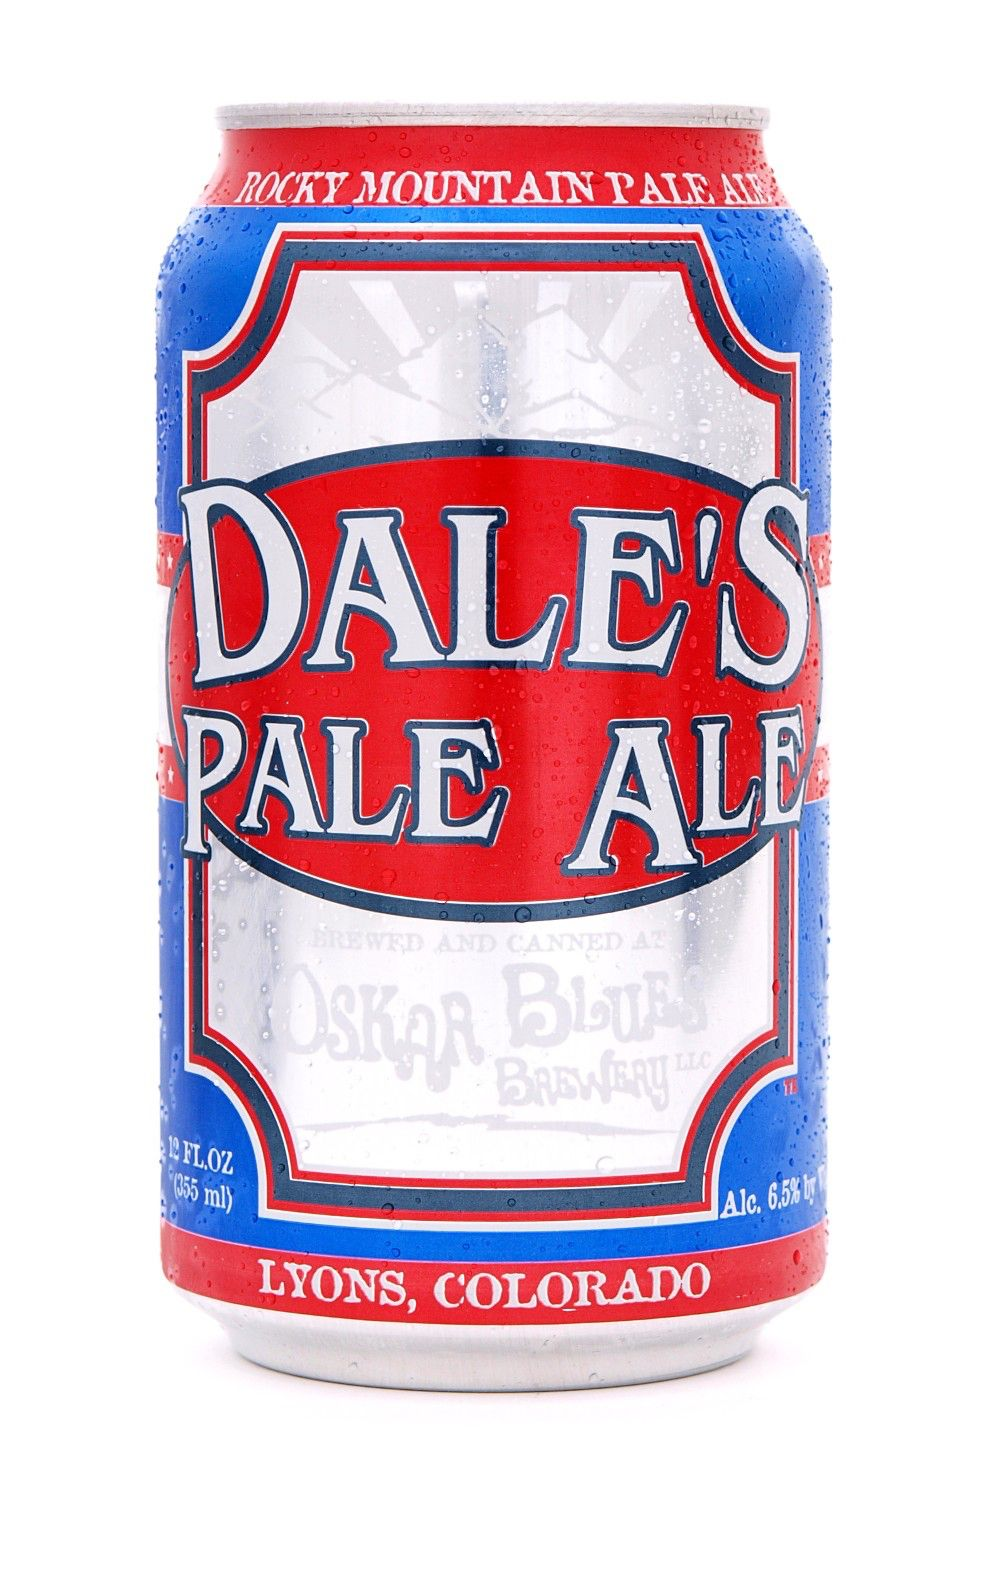 Image From Http Darrylscouch Com Wp Content Uploads 2013 08 Dales Pale Ale Jpg Pale Ale Beer Craft Beer